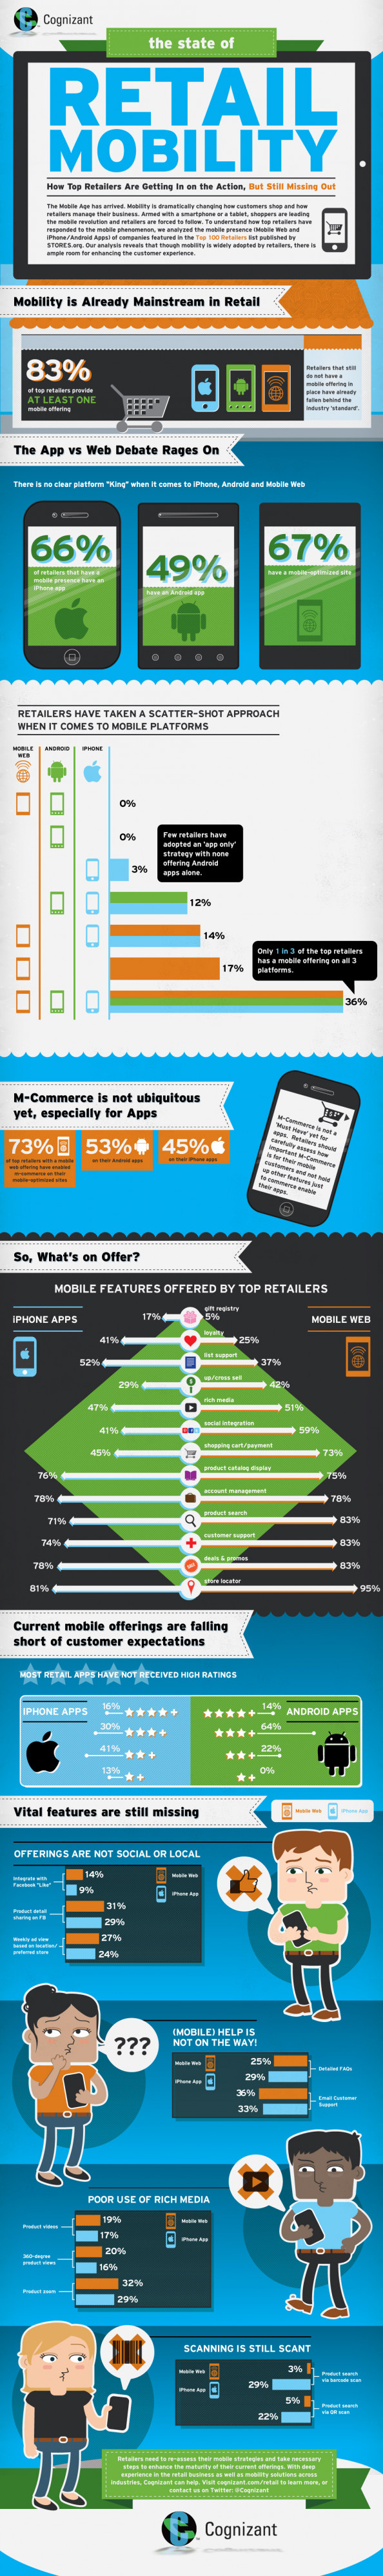 Retail Mobility: Navigating the 21st century Gold Rush  Infographic